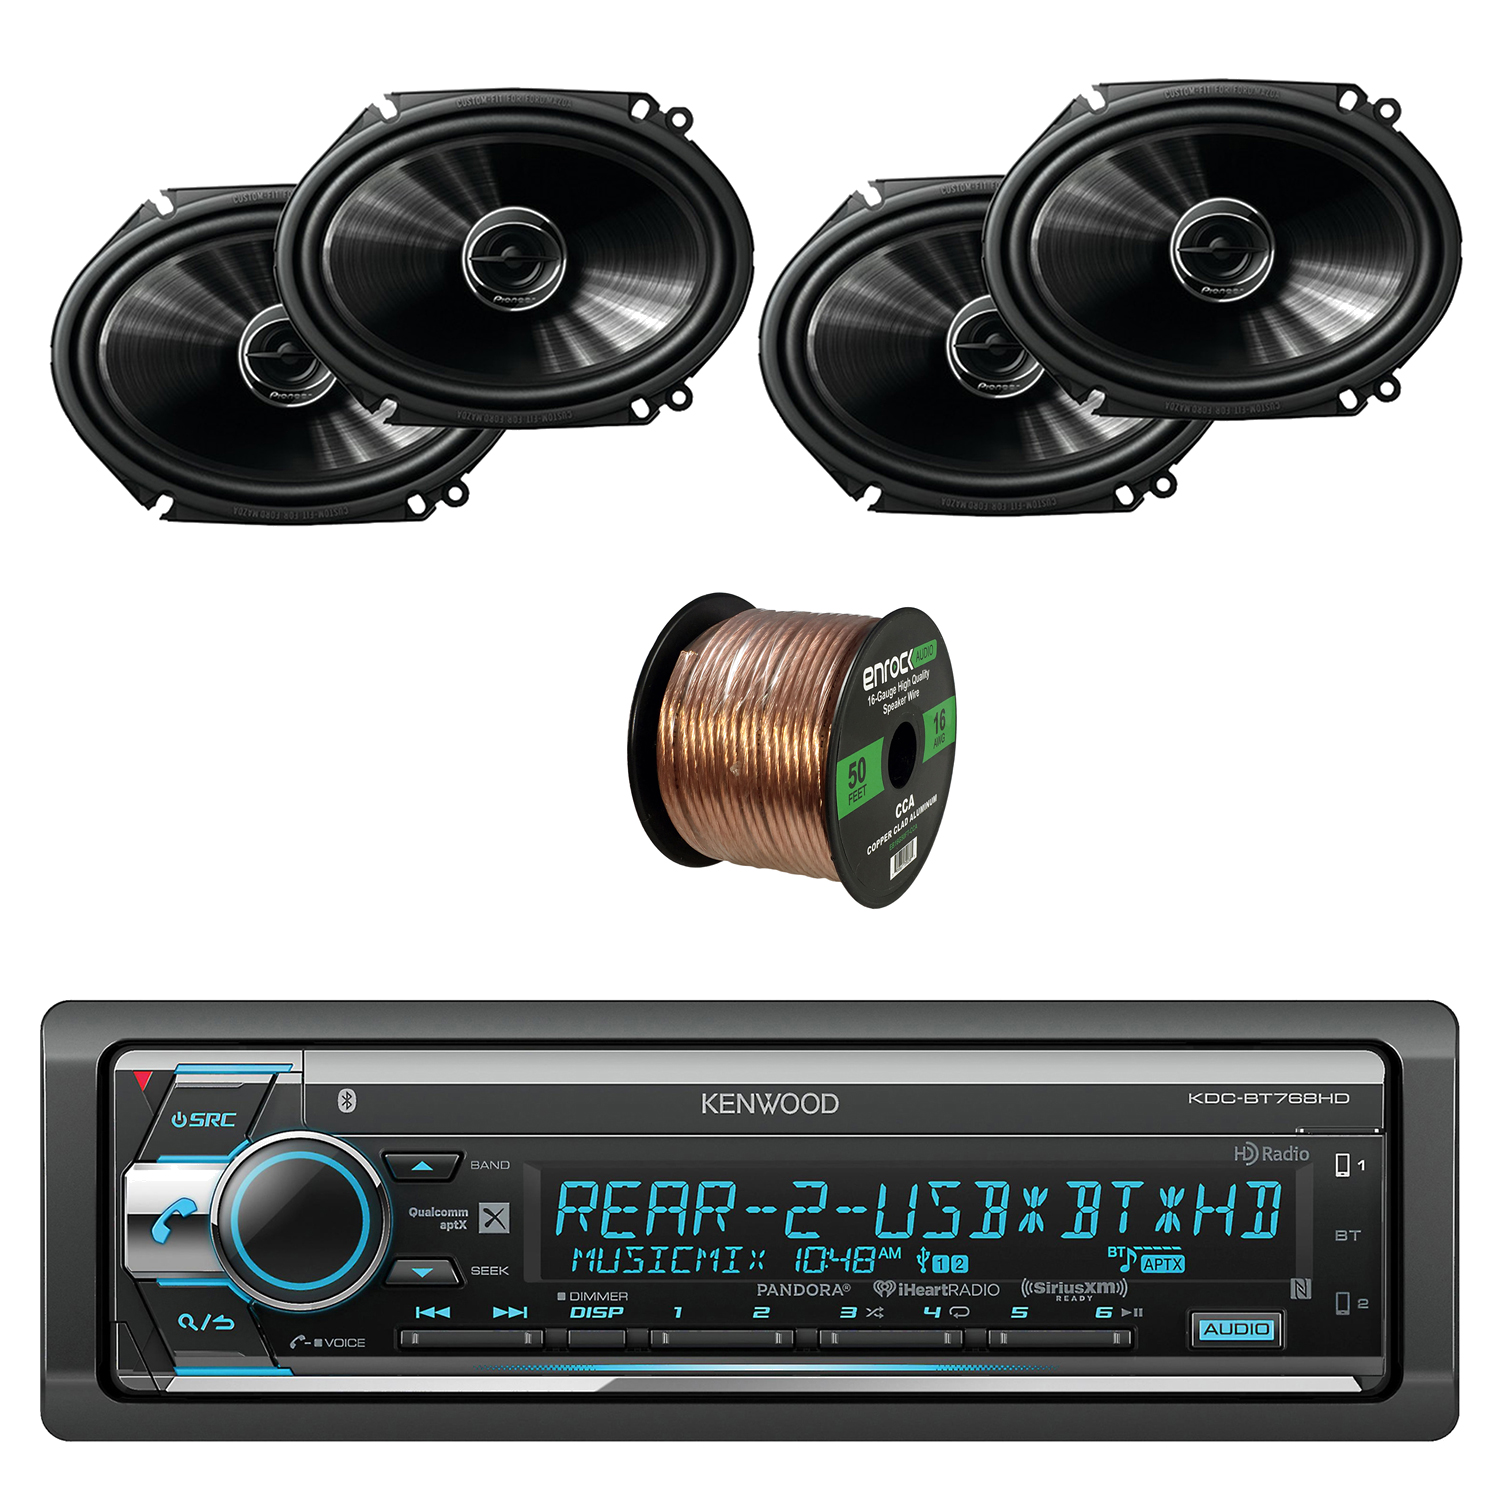 Kenwood 1-Din CD/AM/FM Car Audio Receiver with Bluetooth W/Pioneer 250W 6.8 Inch 2-Way Coaxial Car Audio Speakers 2-pairs & Enrock Audio 16-Gauge 50 Feet Speaker Wire Cable CCA Copper Clad Aluminum.